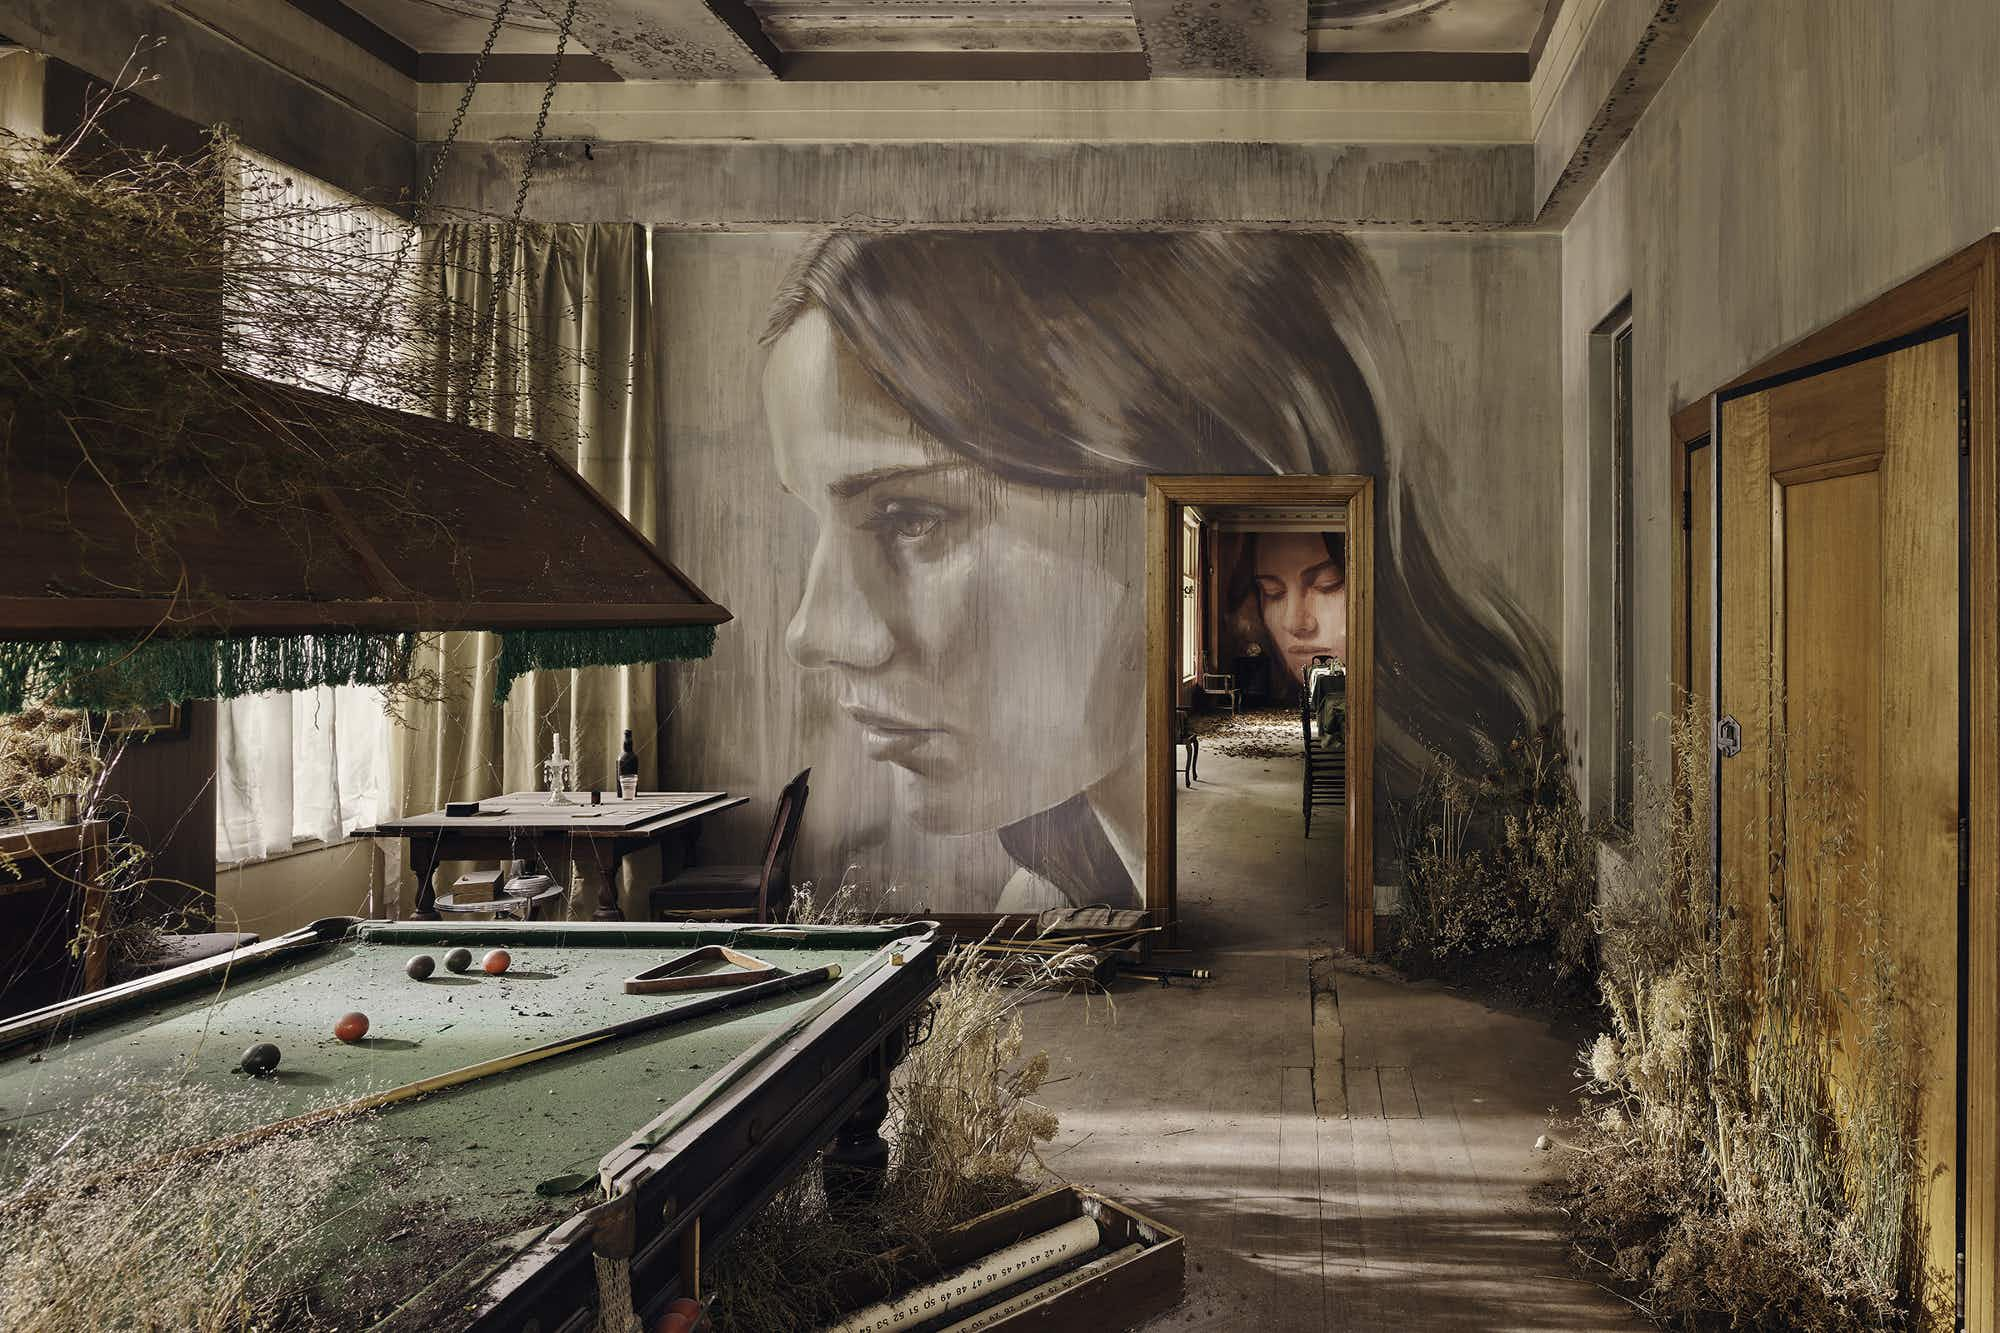 An abandoned mansion in Australia has been transformed into an art gallery